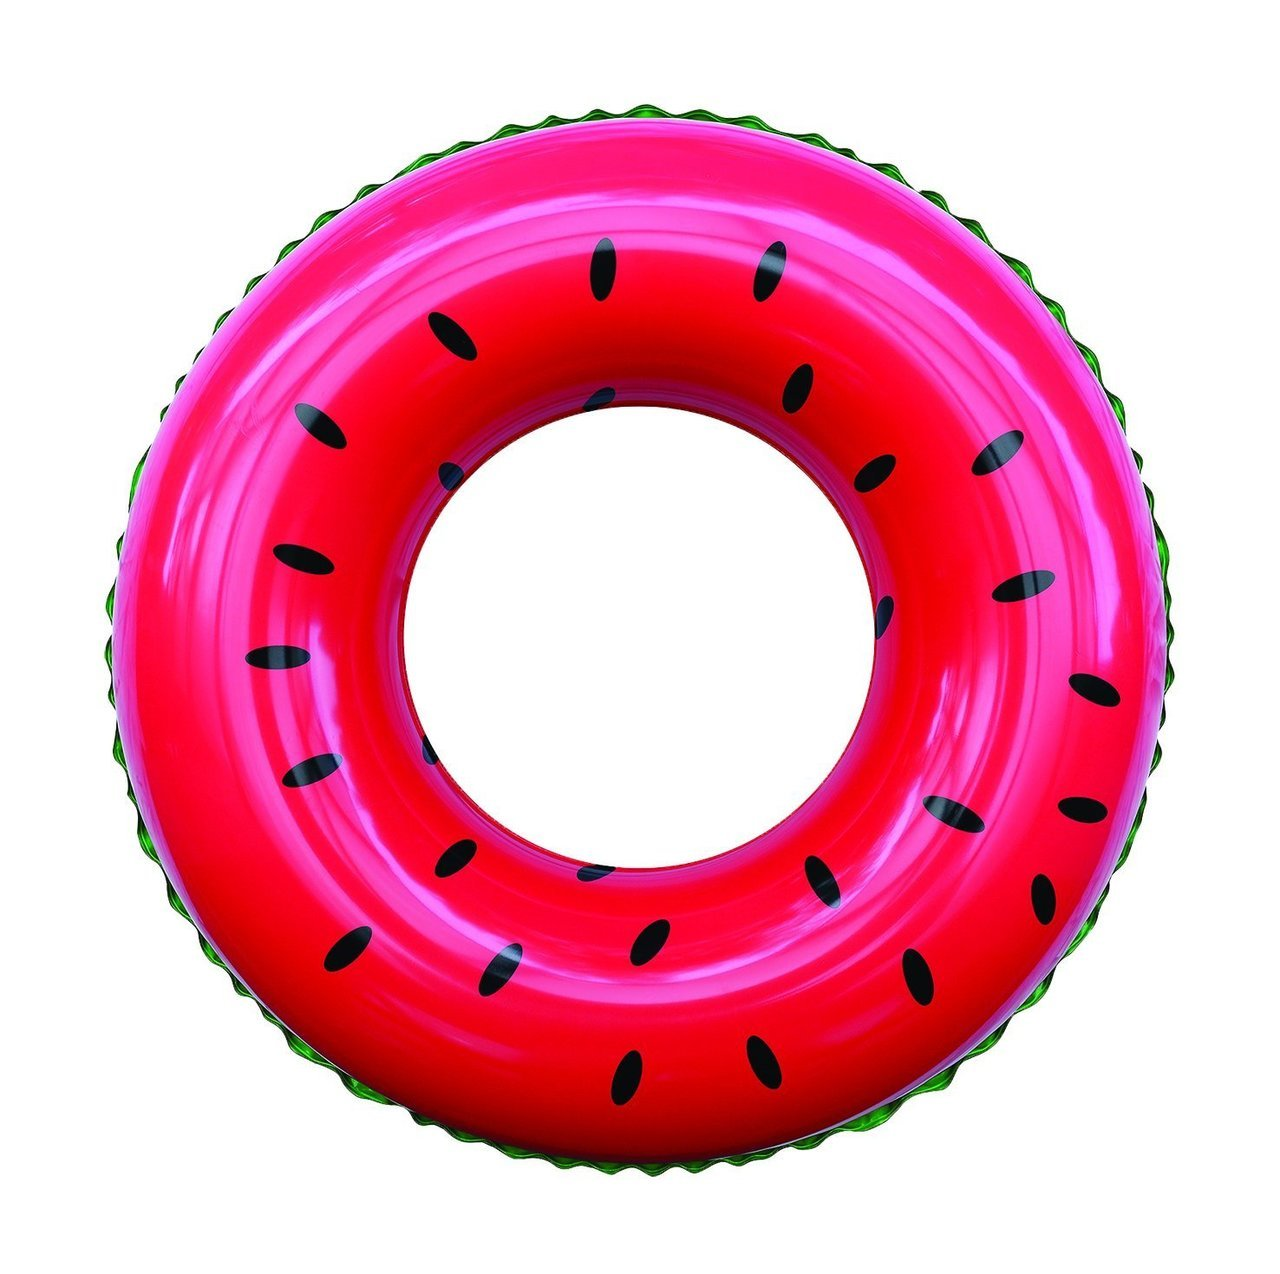 Fruity Swim Rings, 3-Pack